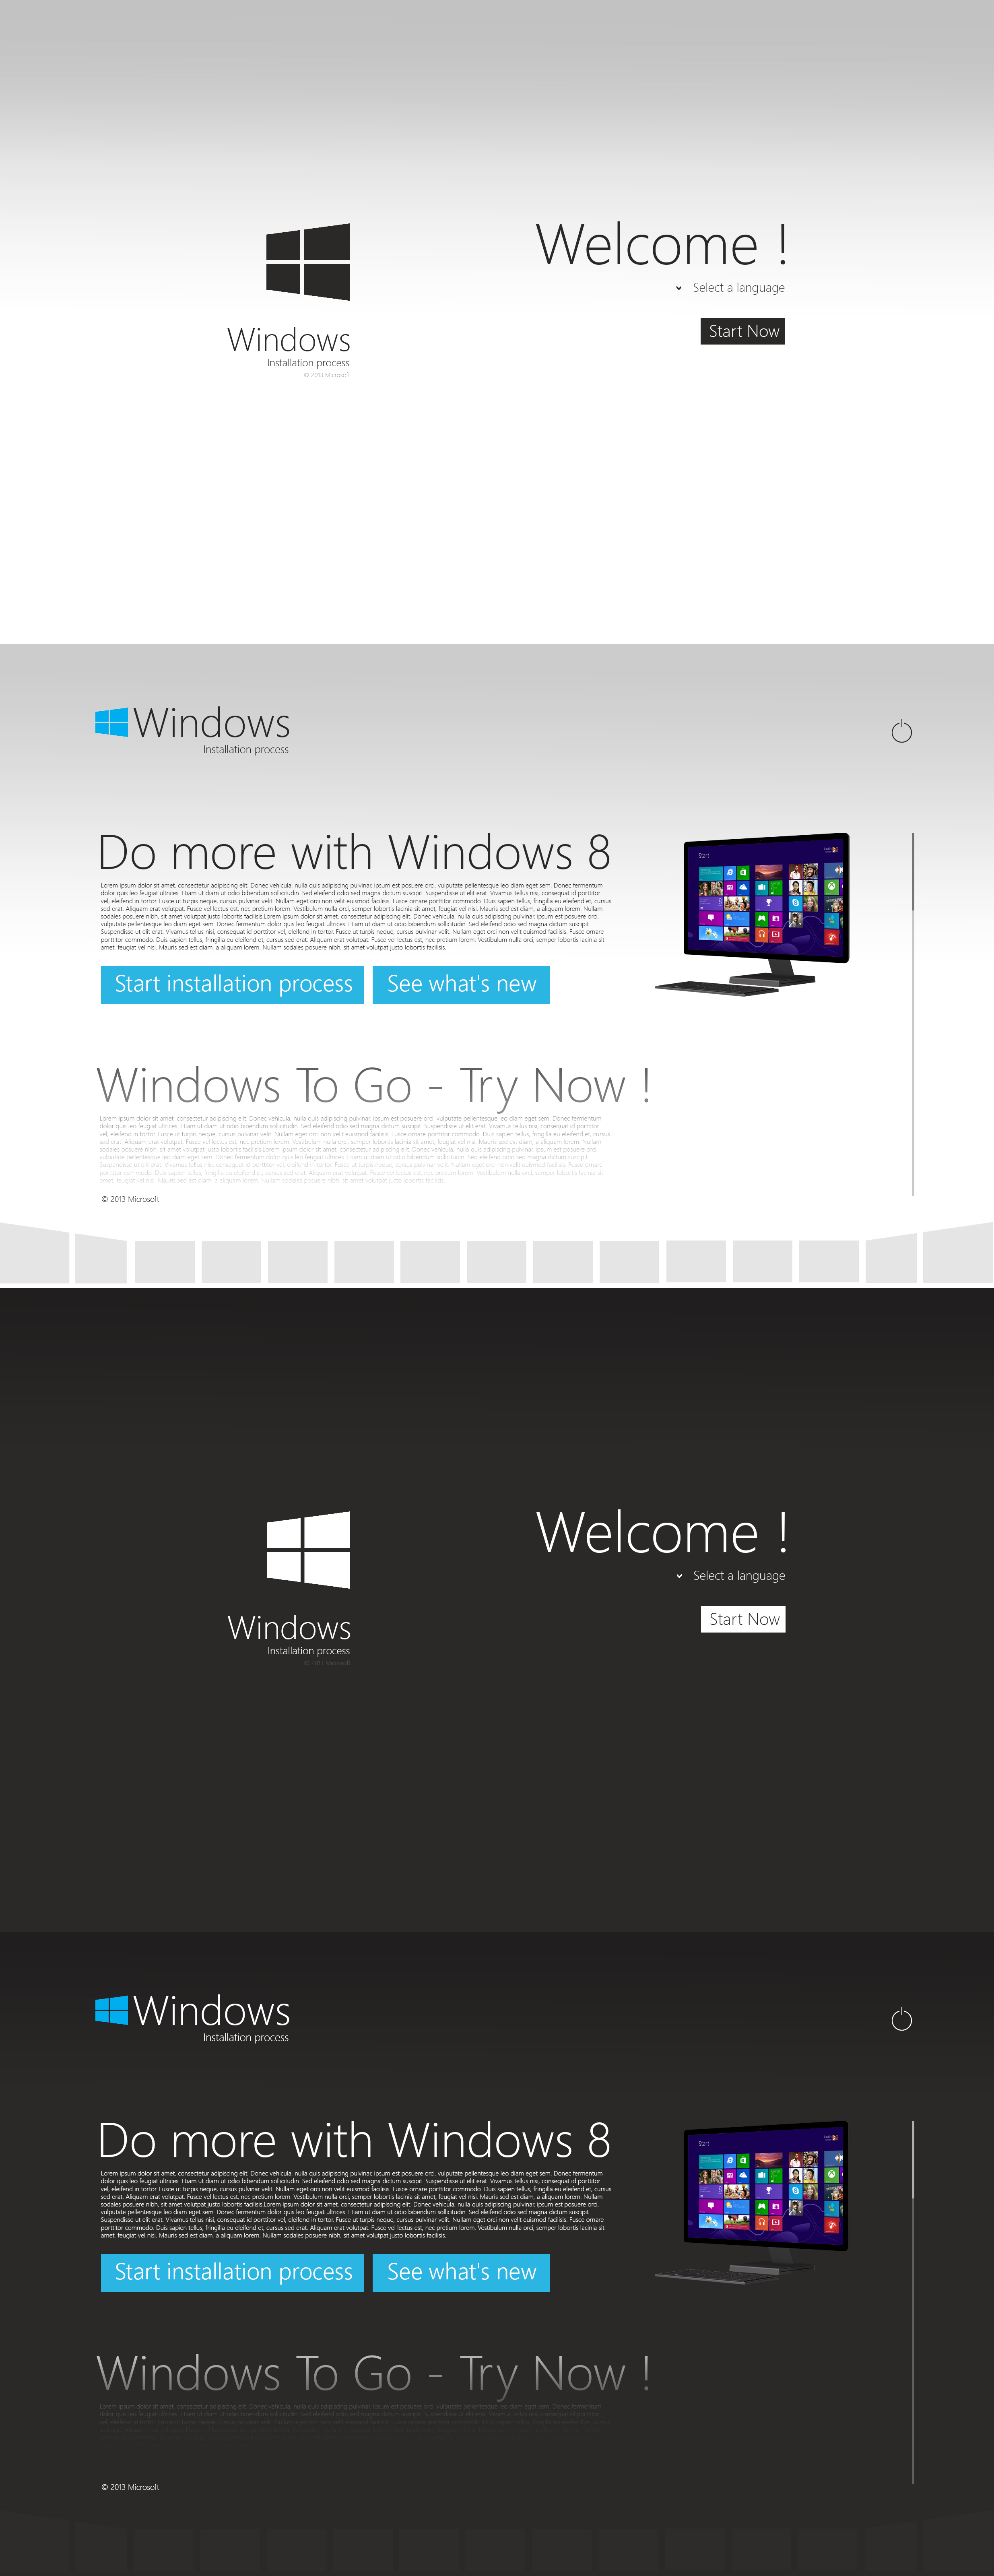 Windows Installation Process - Concept by danielskrzypon